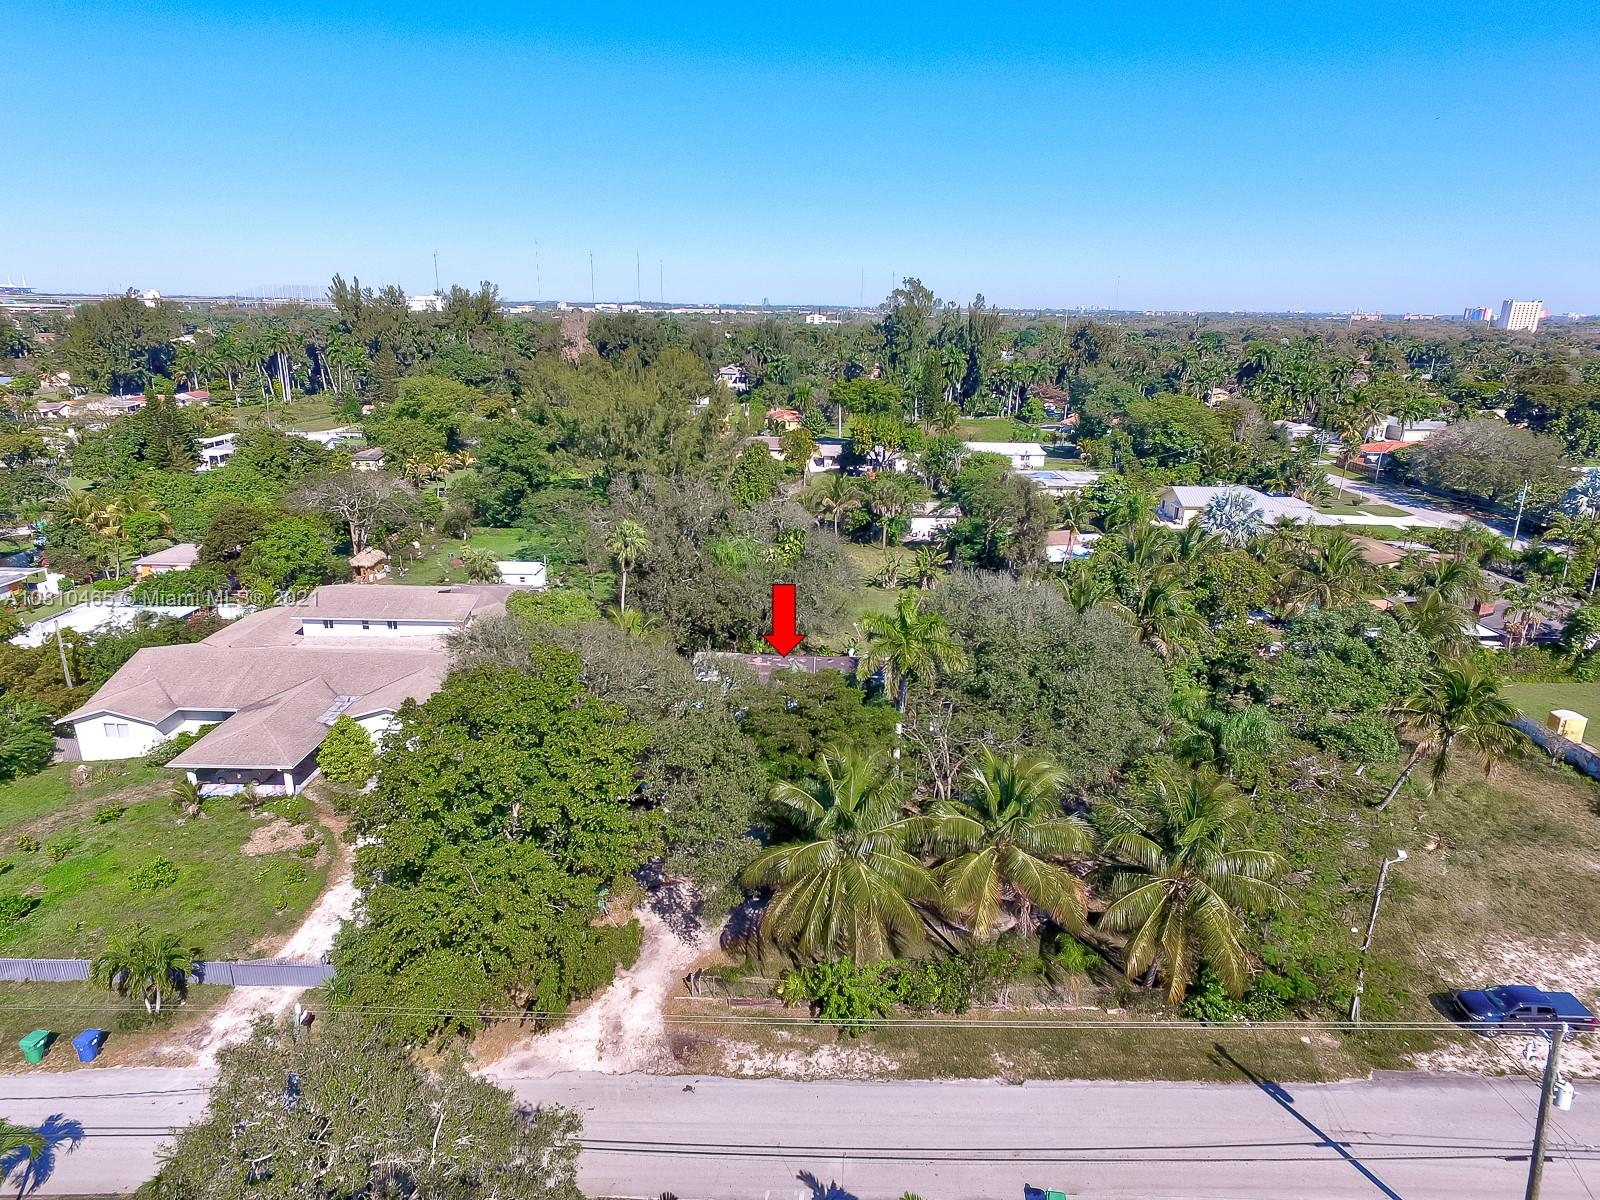 151 NE 154TH STREET, Miami, FL 33162